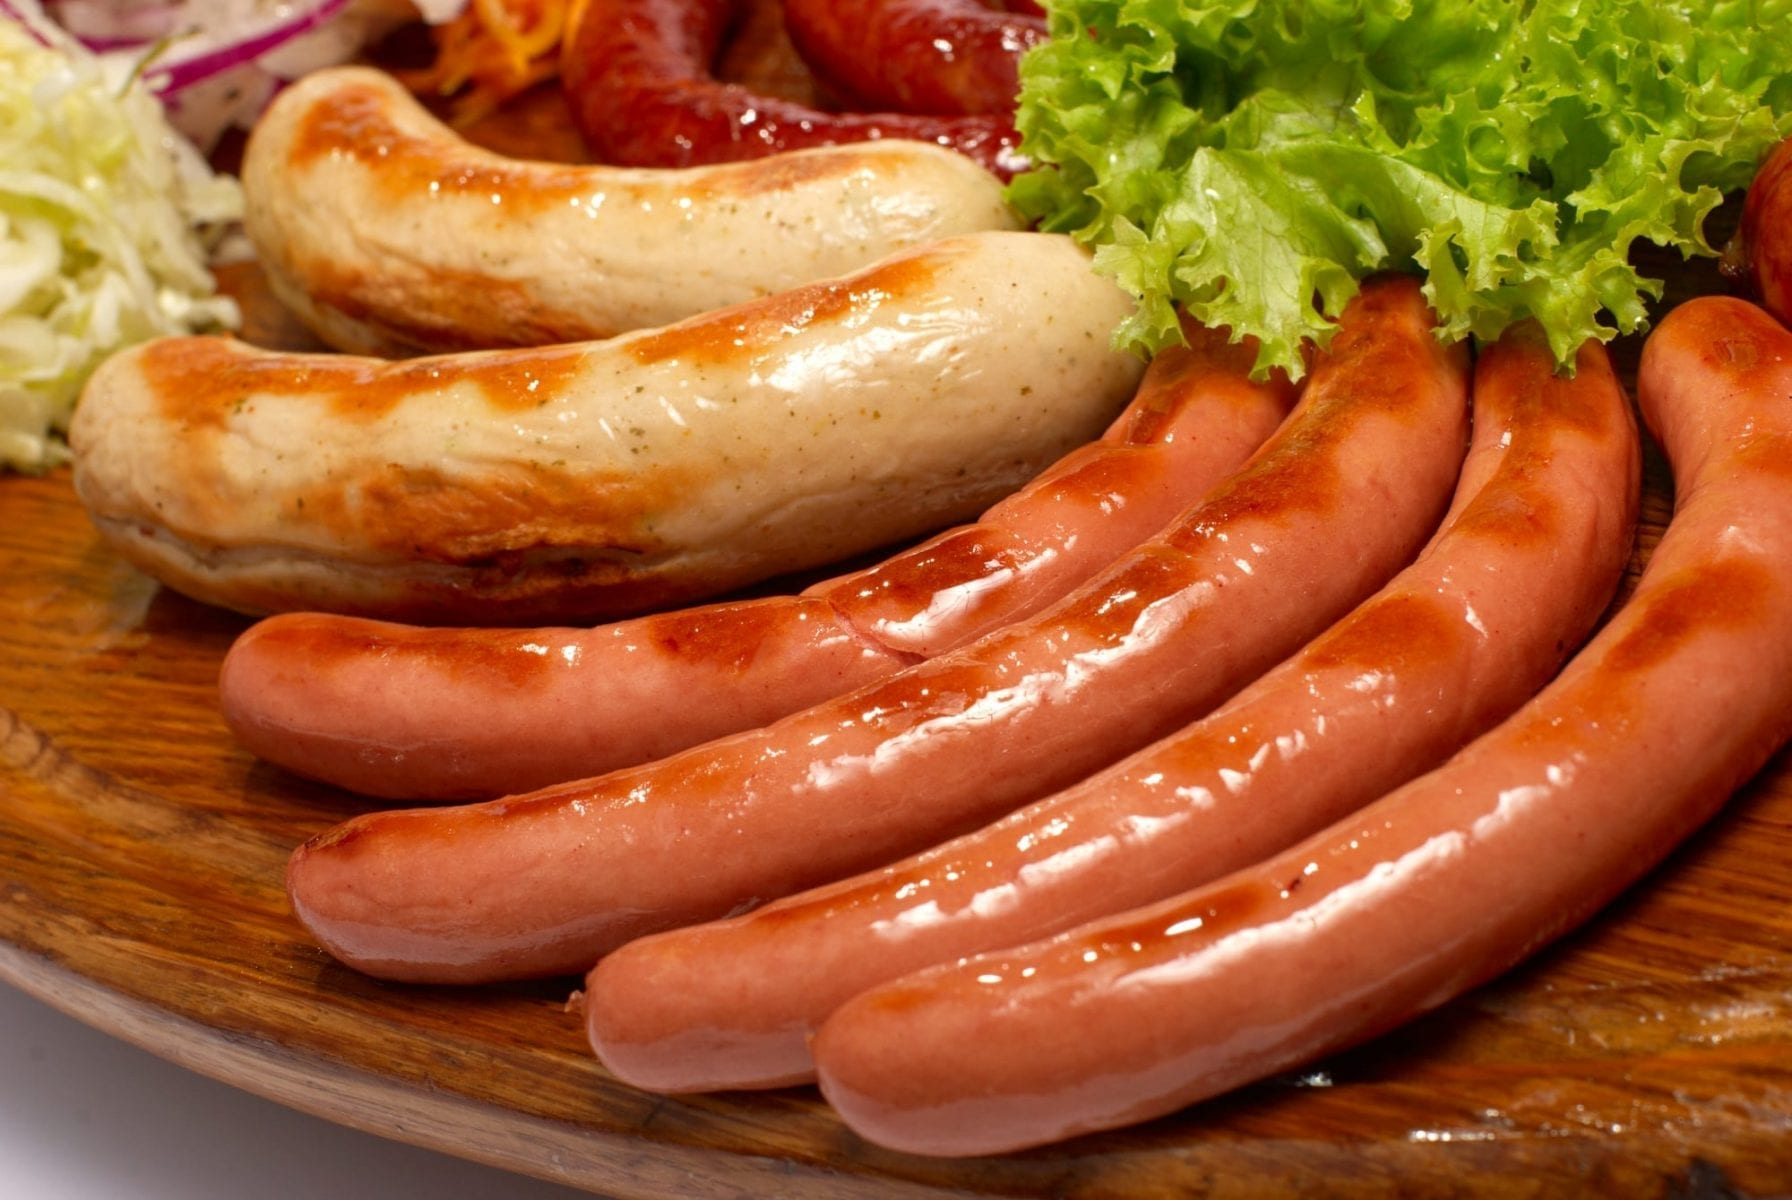 It's All Wurst! German Sausages Types- Where to Buy German Sausage